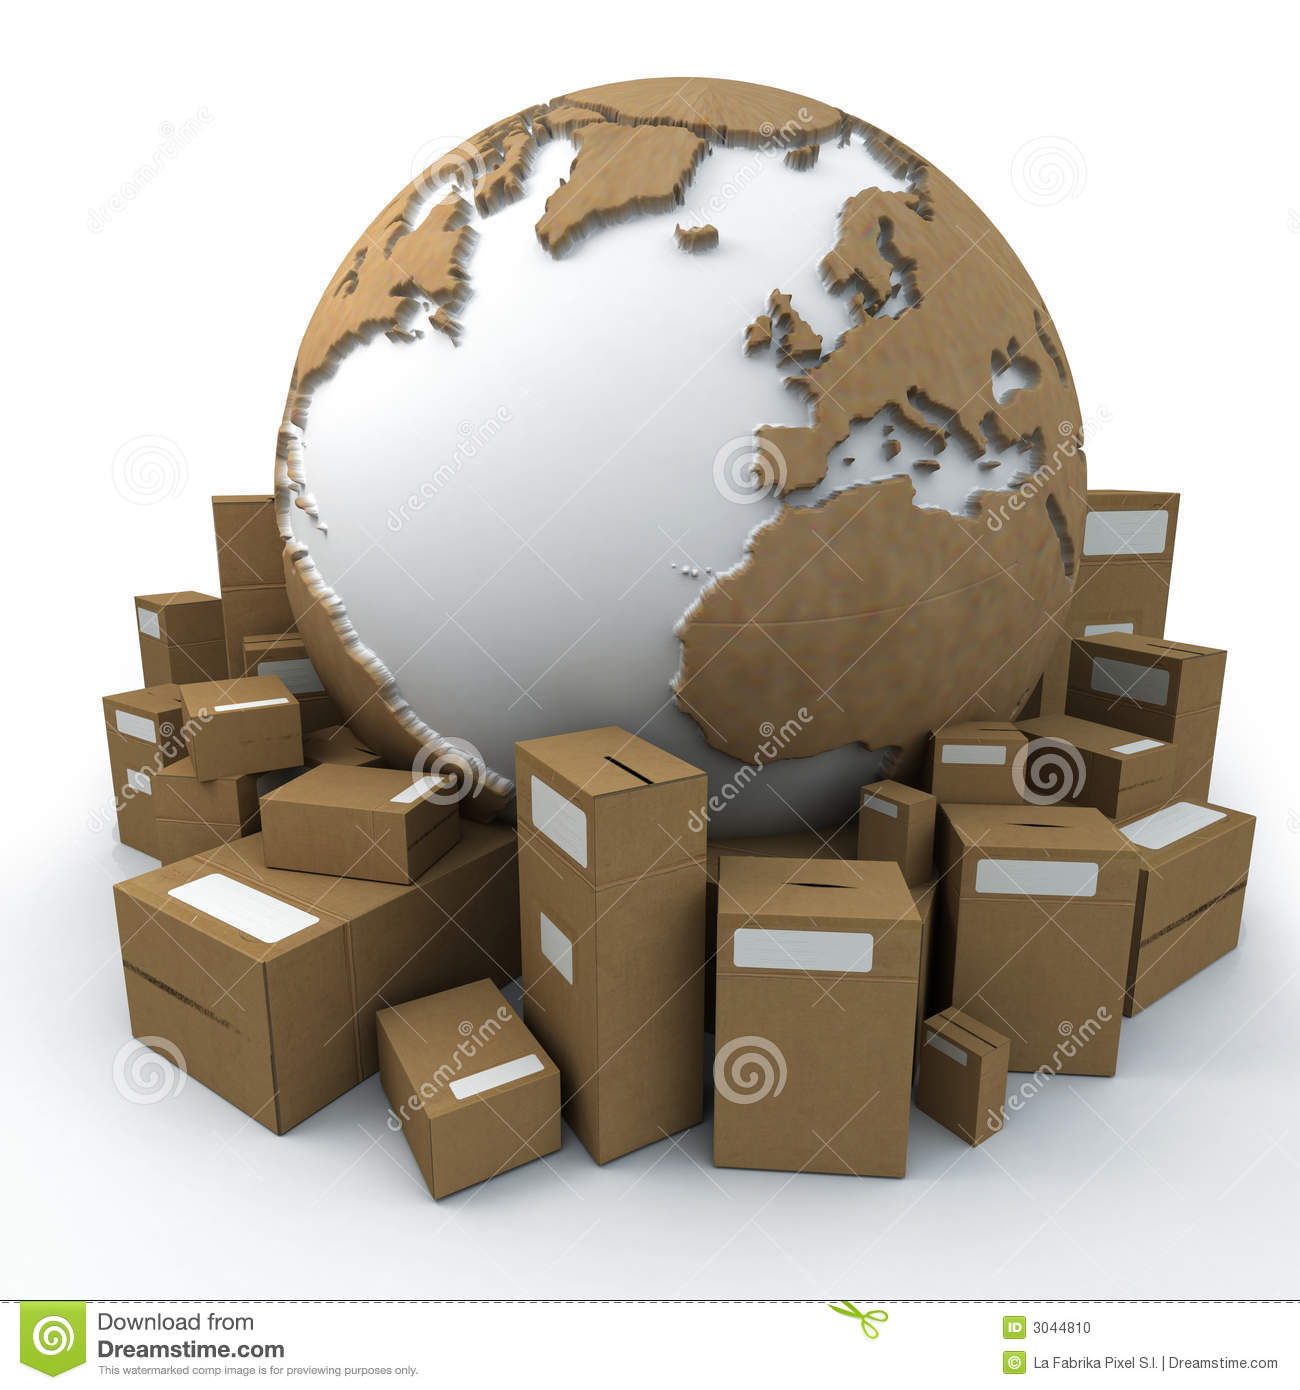 Packaged world